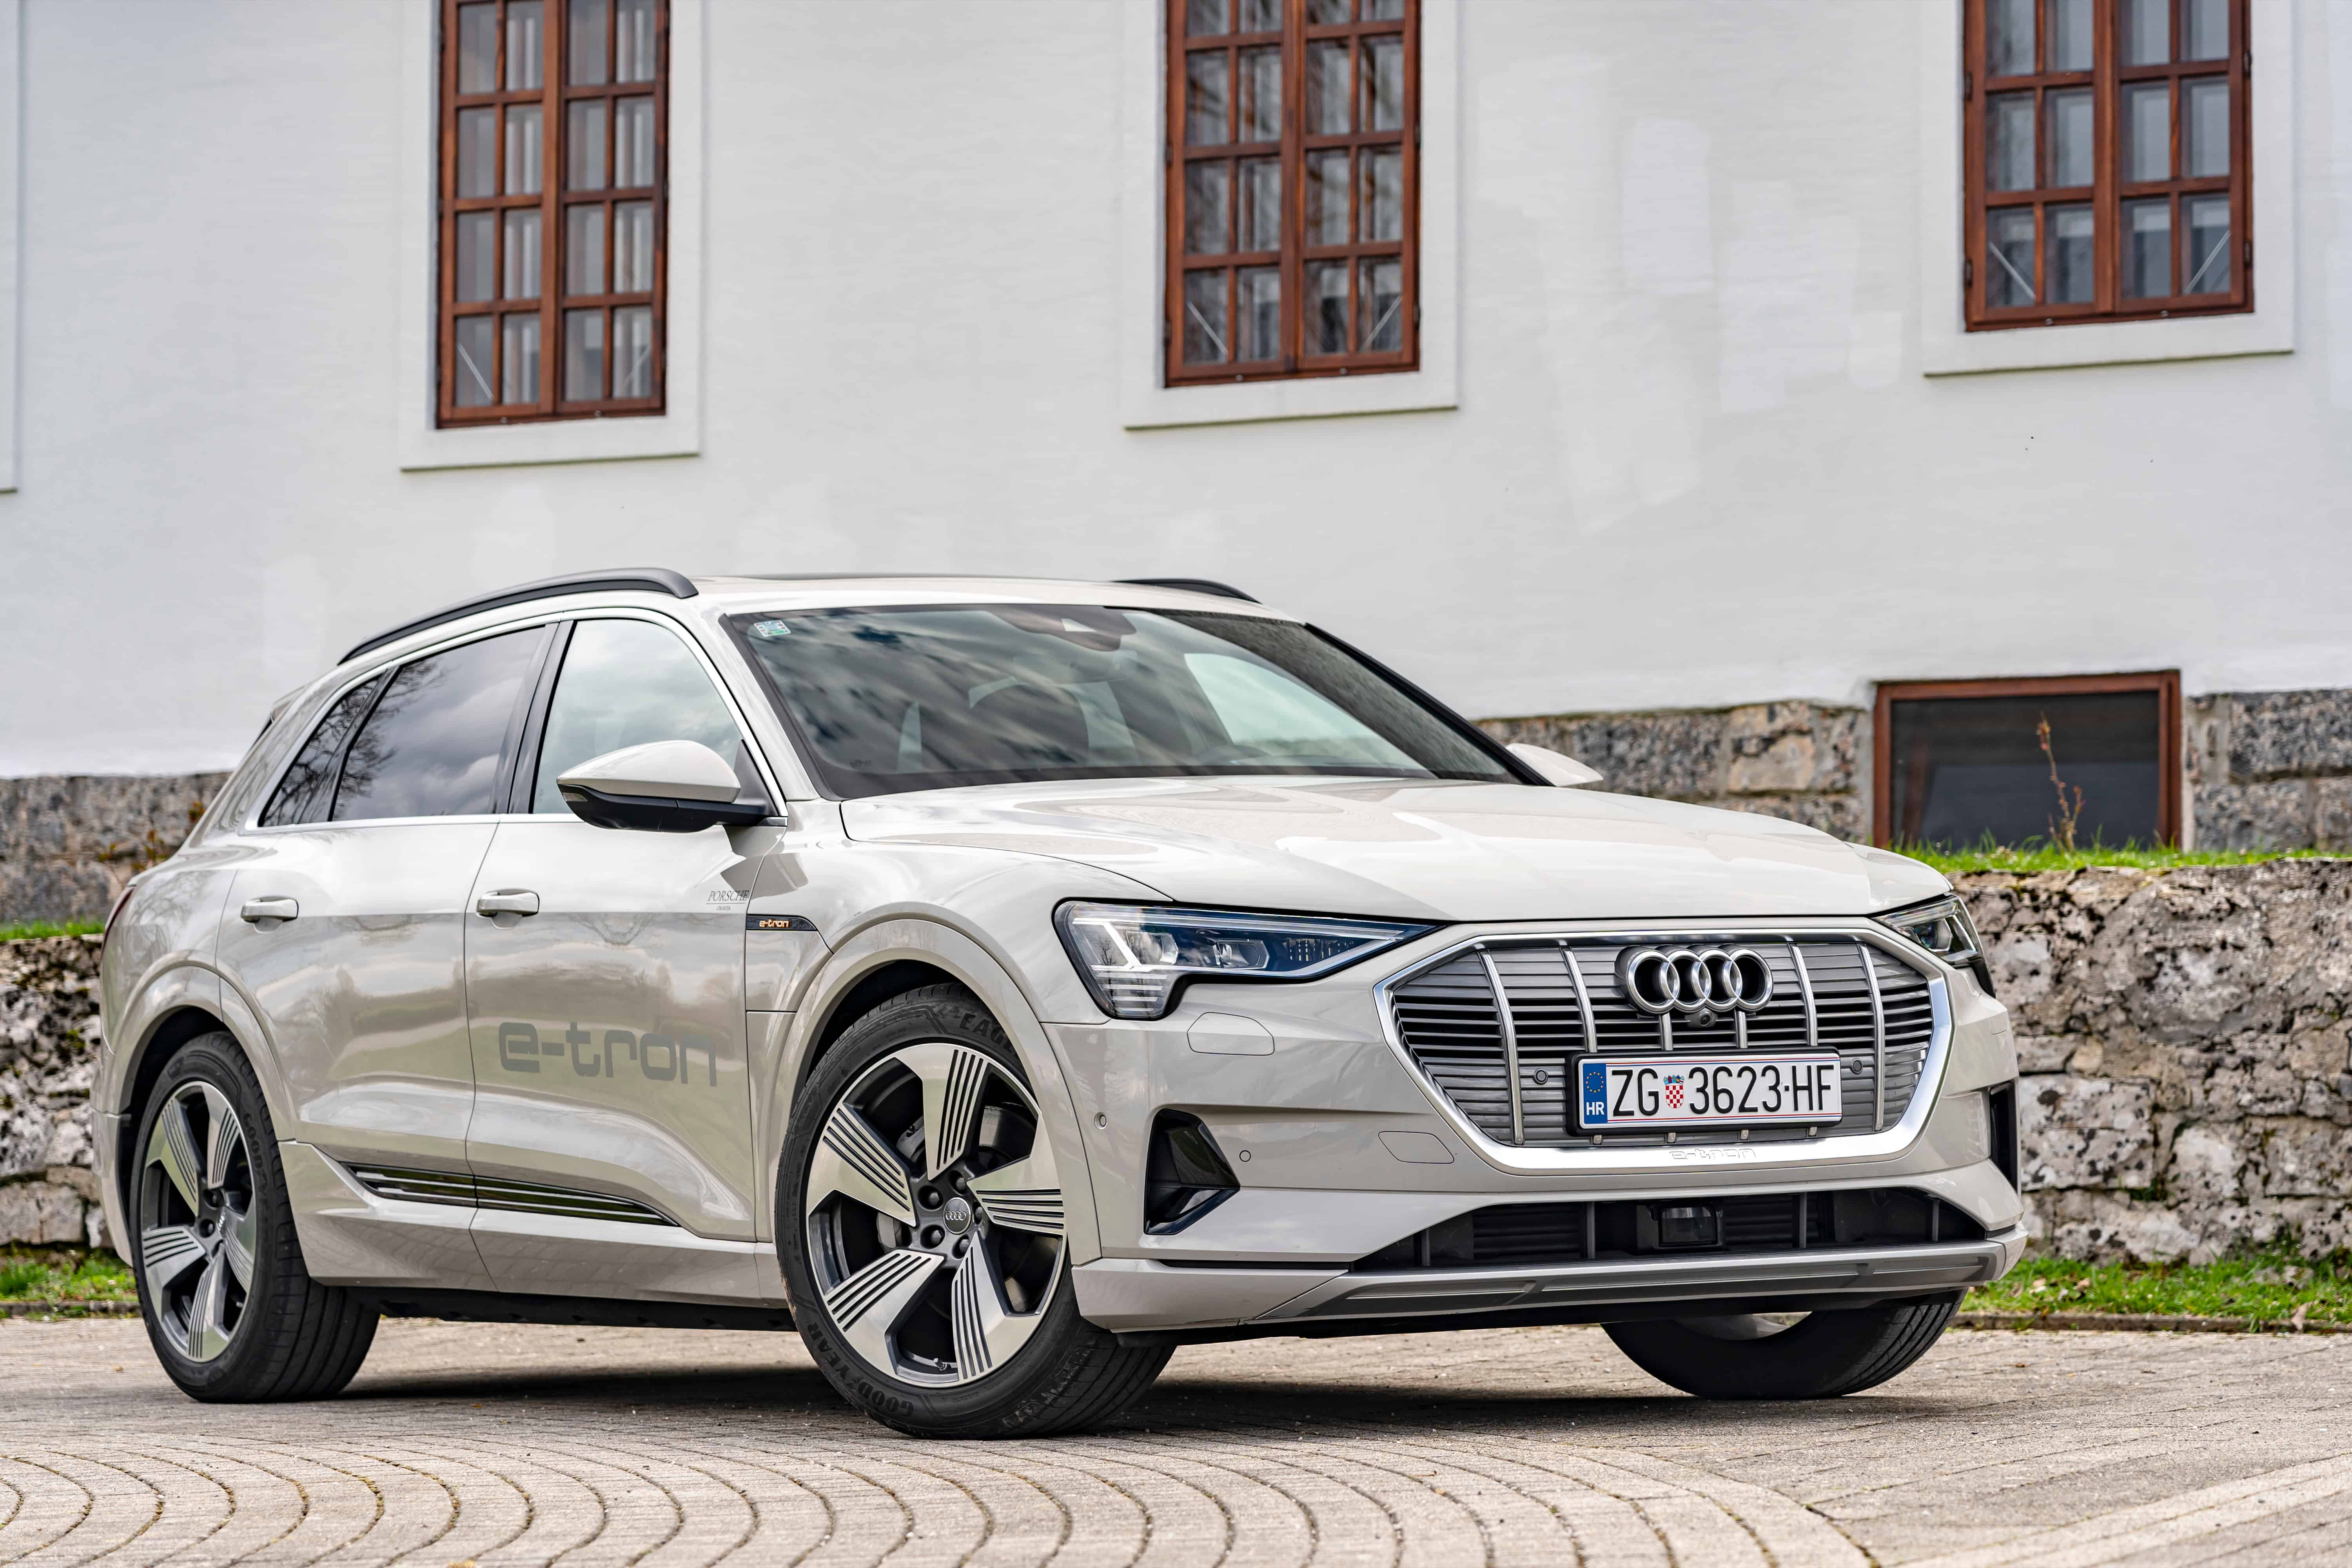 Audi Recalling E-Trons Due To Fire Risk